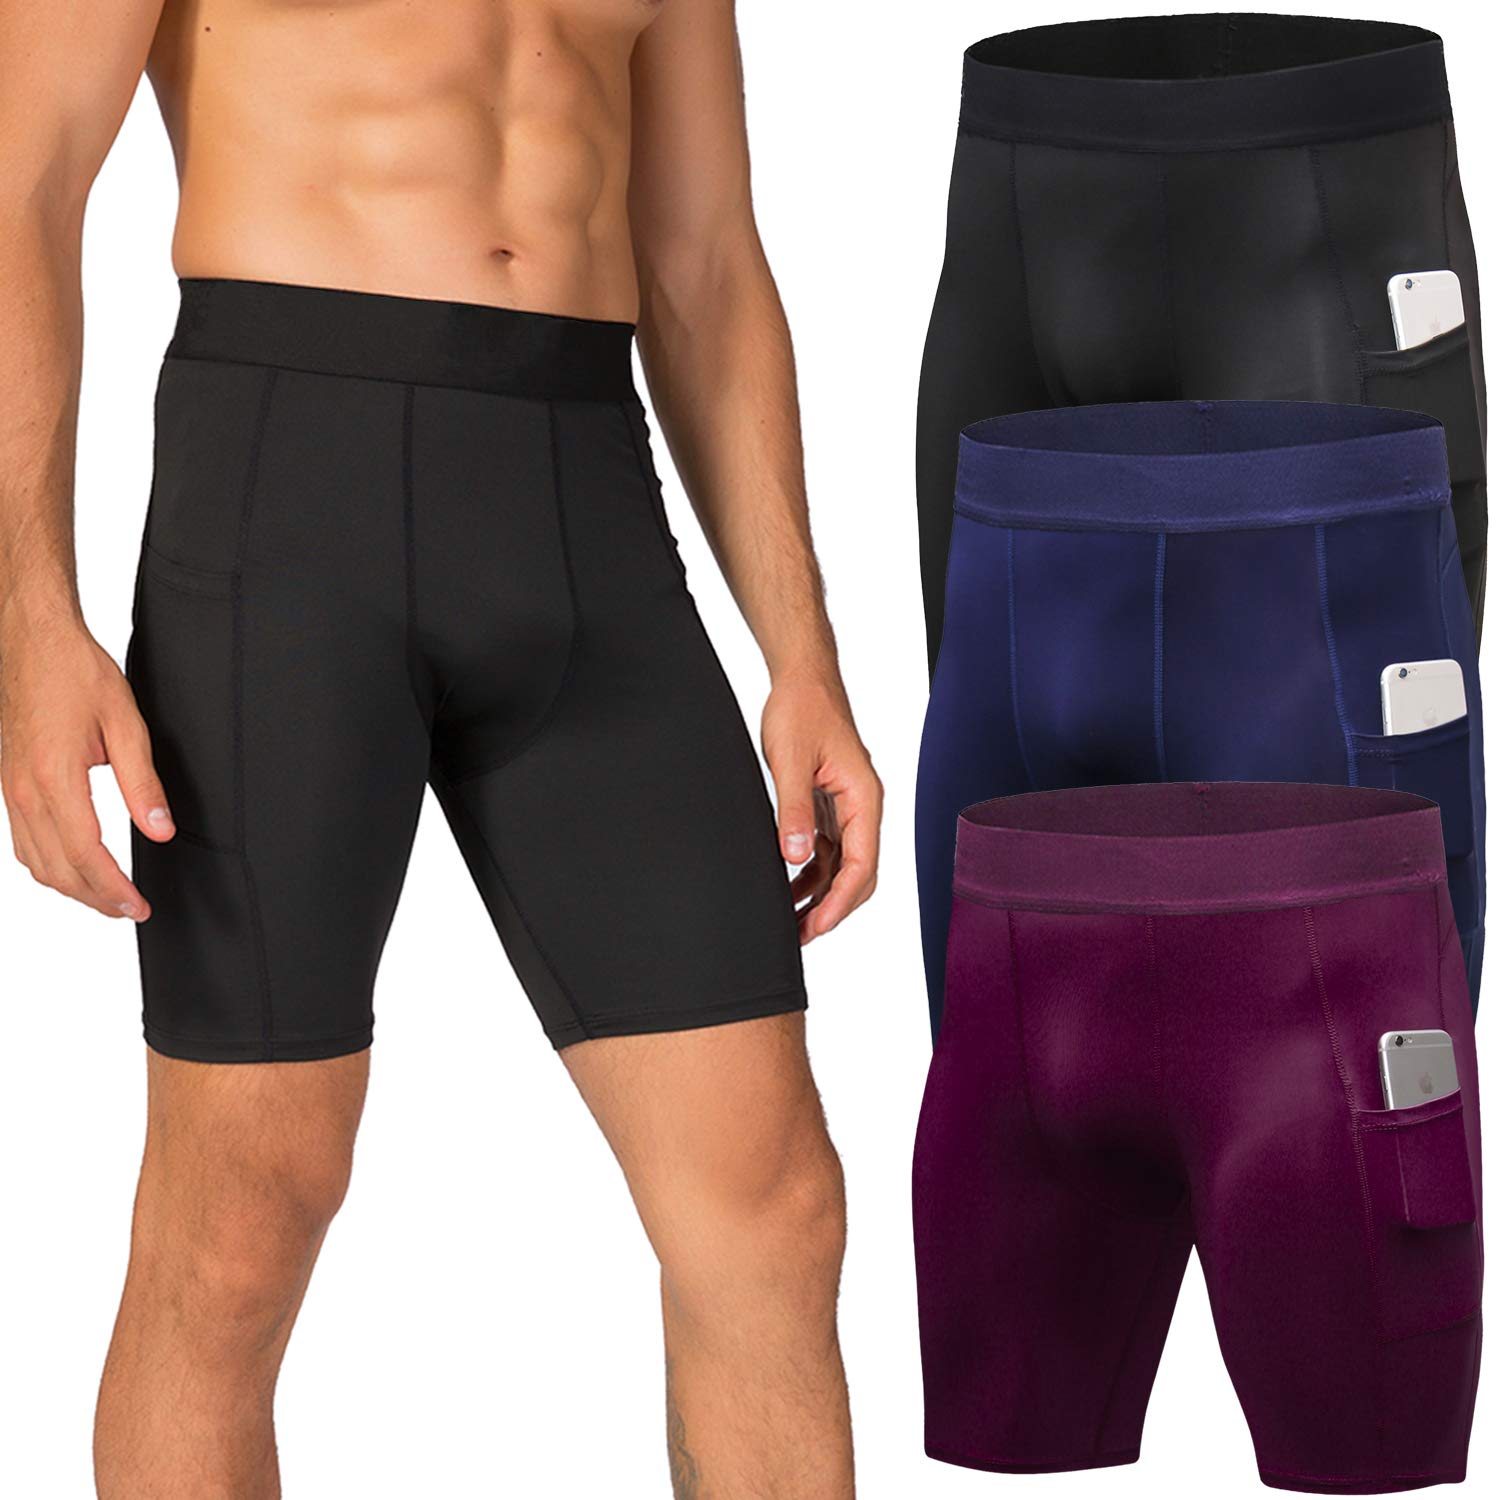 Lavento Men's Compression Shorts Sports Baselayer Cool Dry Tights (3 Pack-3815 Black/Navy Blue/Wine red,Small) by Lavento